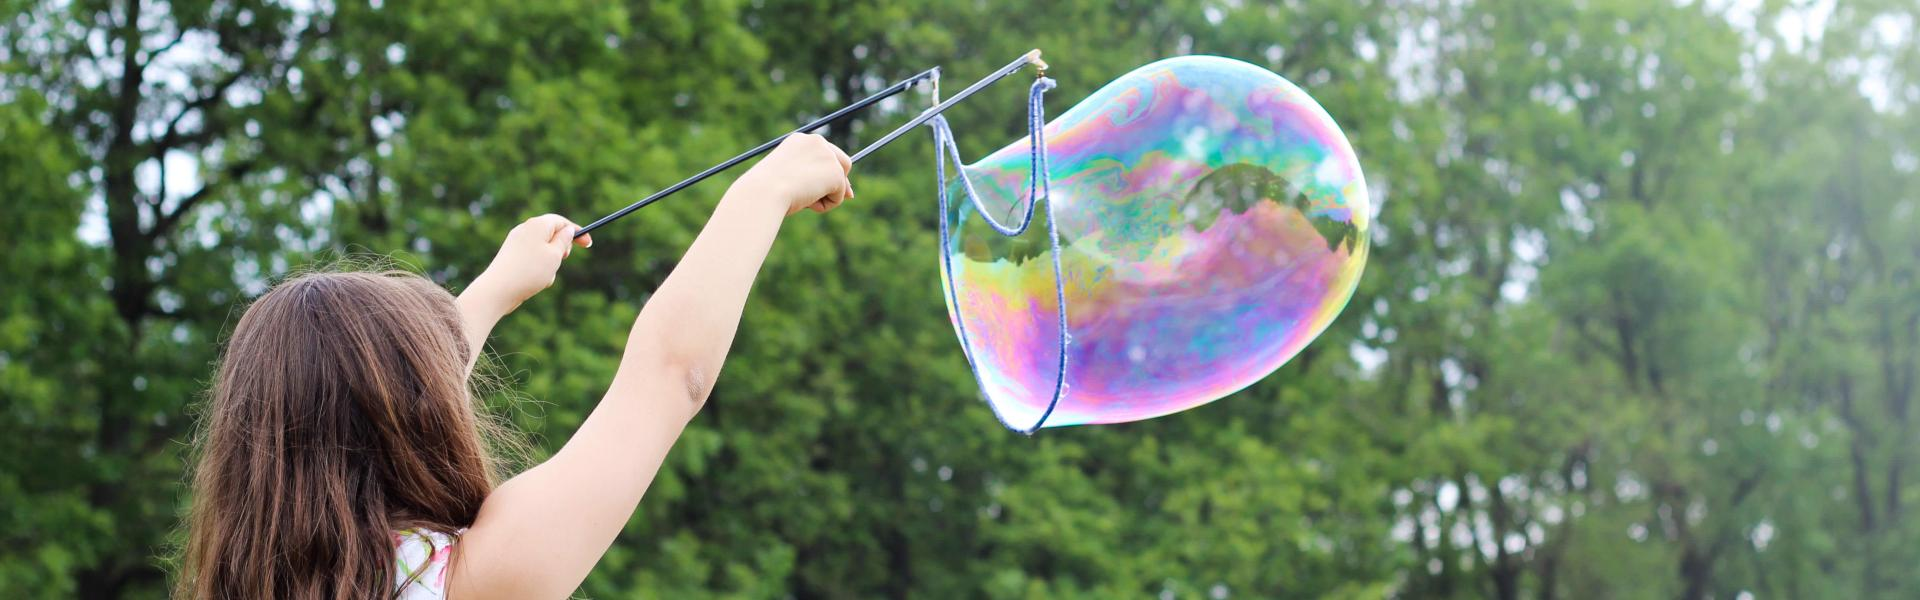 A young girl making large bubbles with a wand.